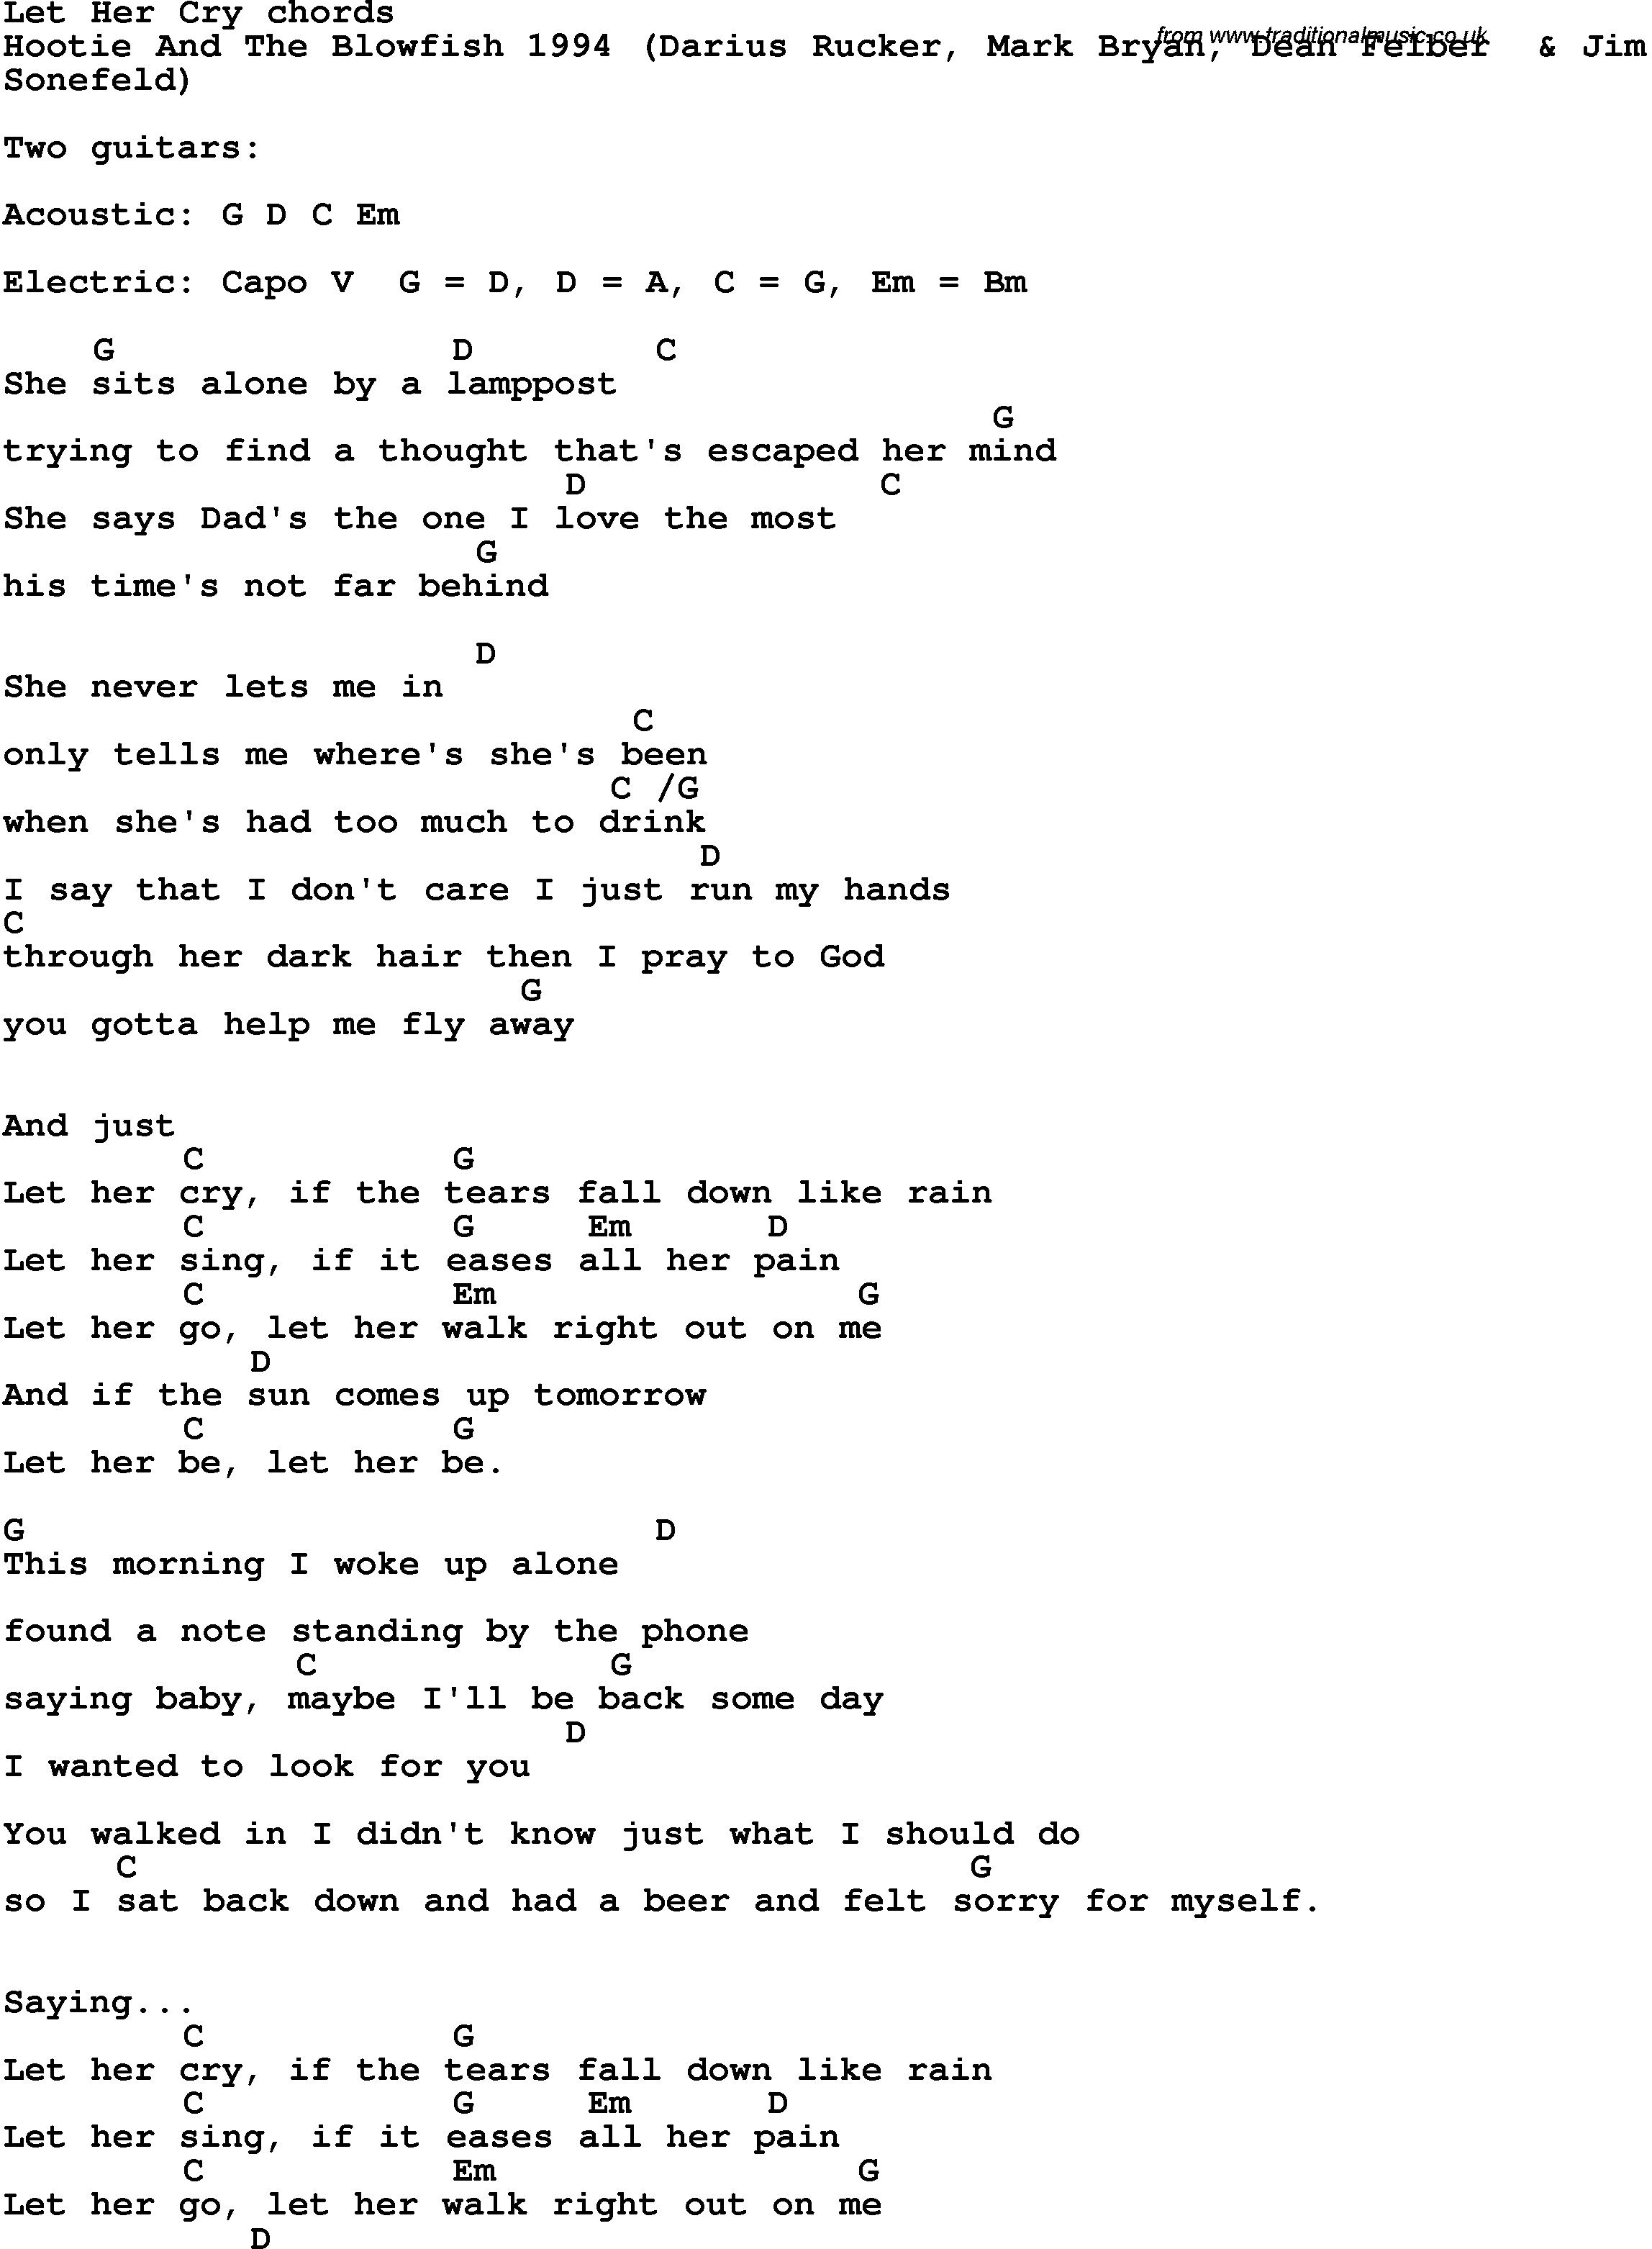 Song Lyrics With Guitar Chords For Let Her Cry